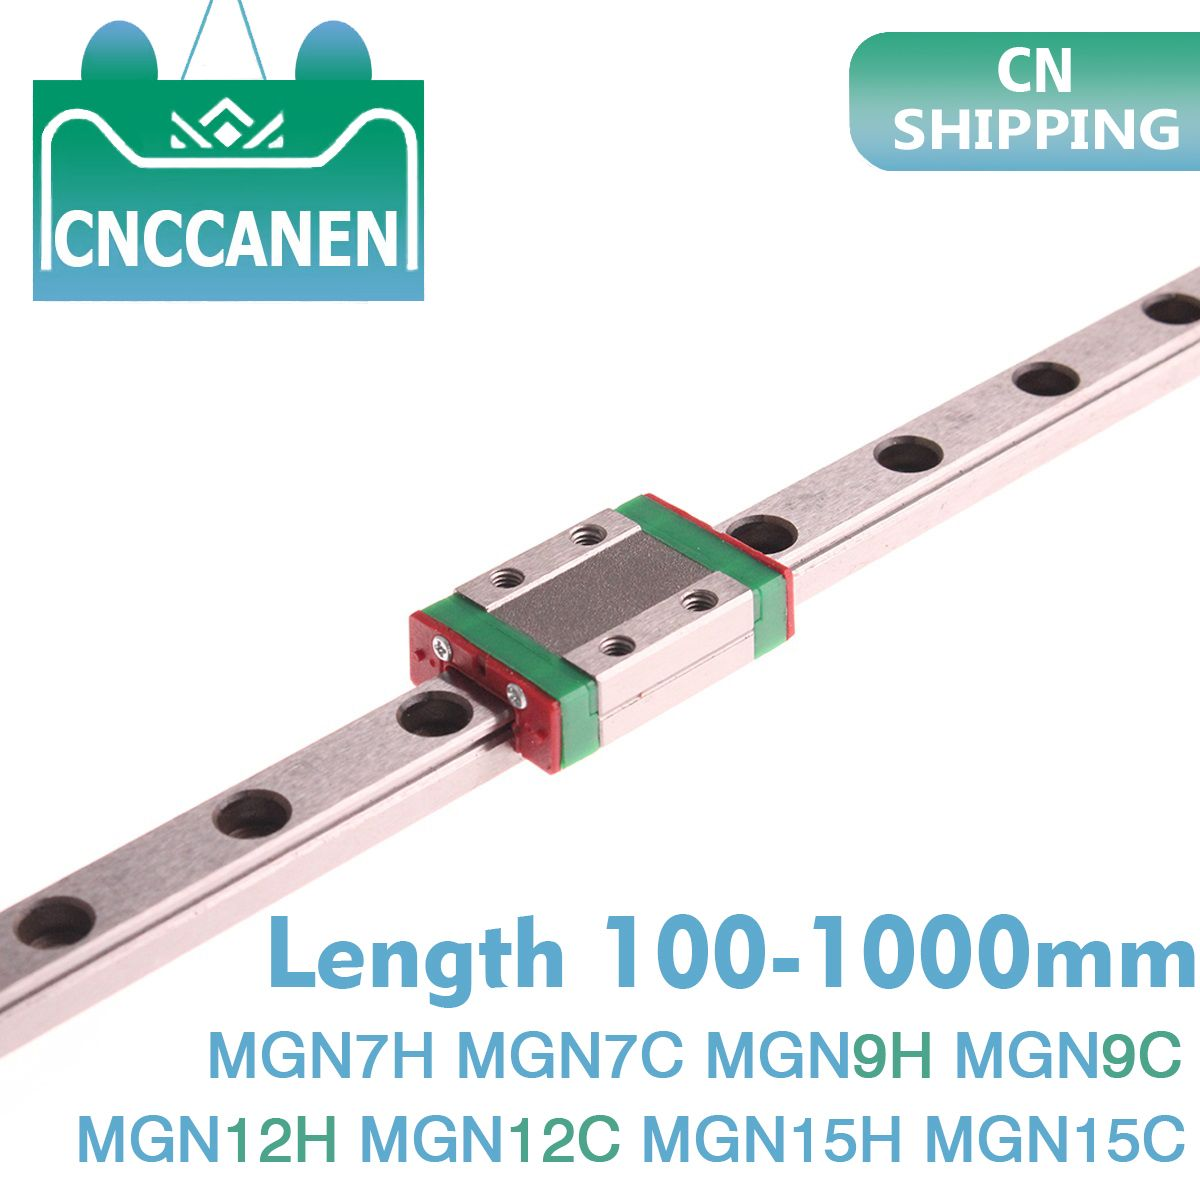 MGN7 MGN9 MGN12 MGN15 100 - 1000mm Miniature Linear Rail Slide 1pc MGN Linear Guide +1pc MGN9H or MGN9C Carriage 3D Printer CNC